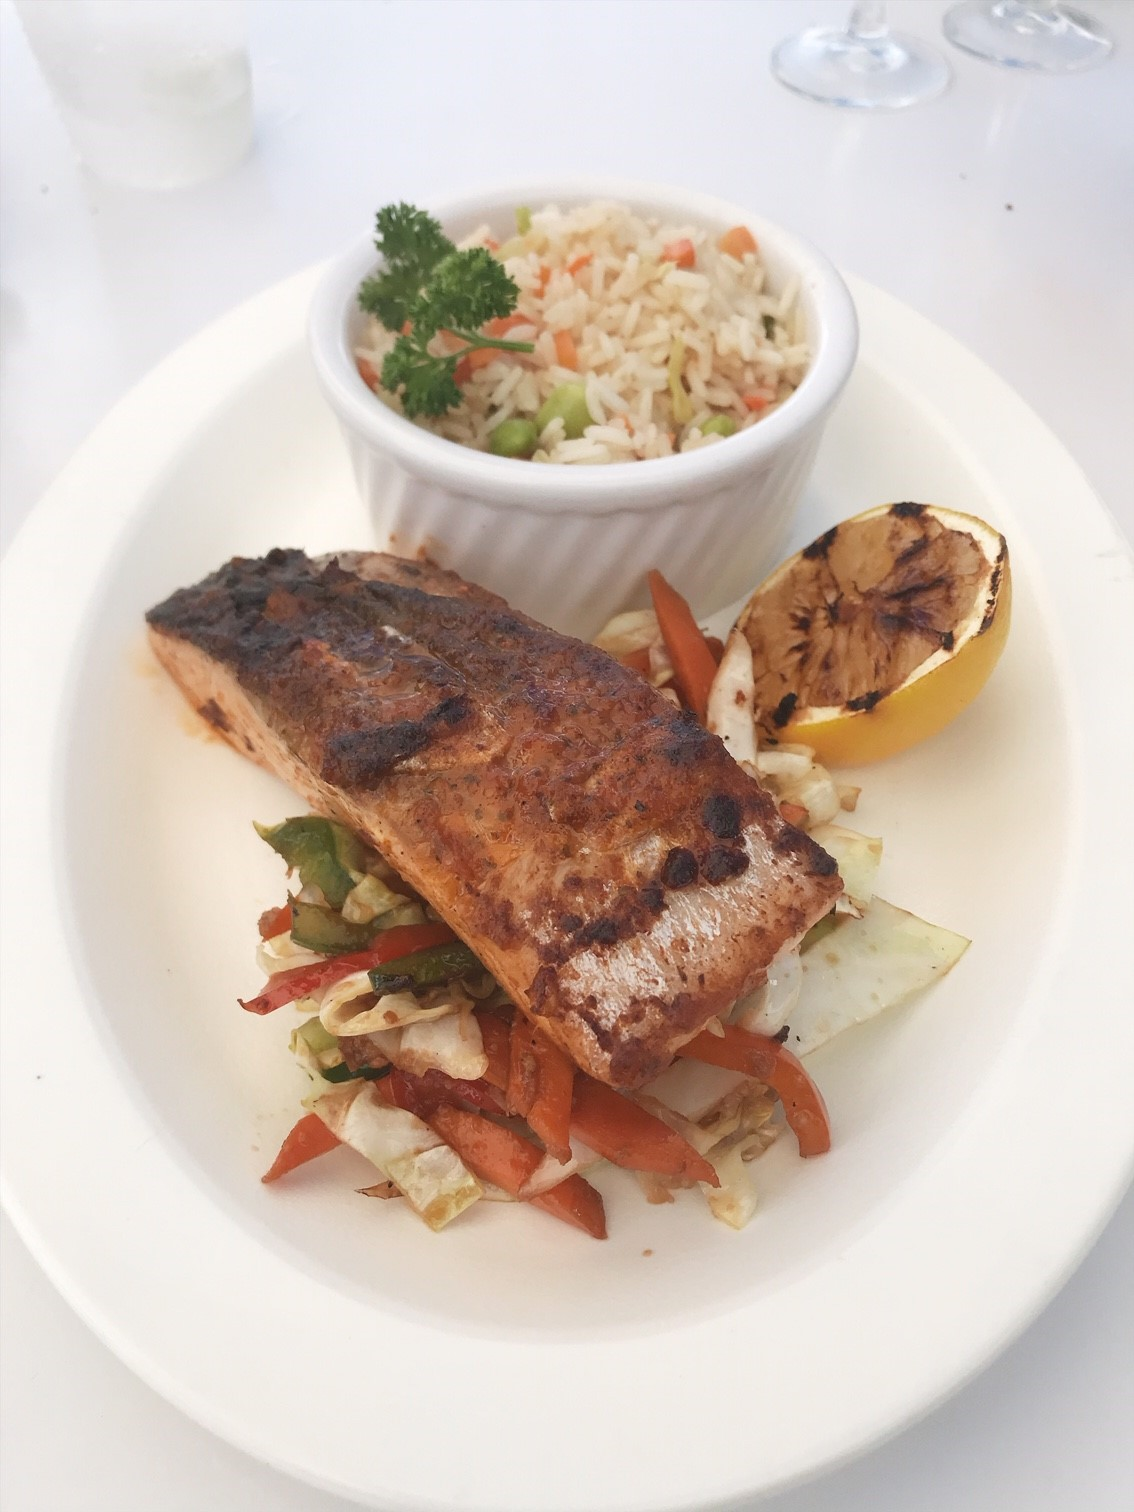 BVI Restaurant Guide - Where to eat in the British Virgin Islands. Lunch at Top of the Baths